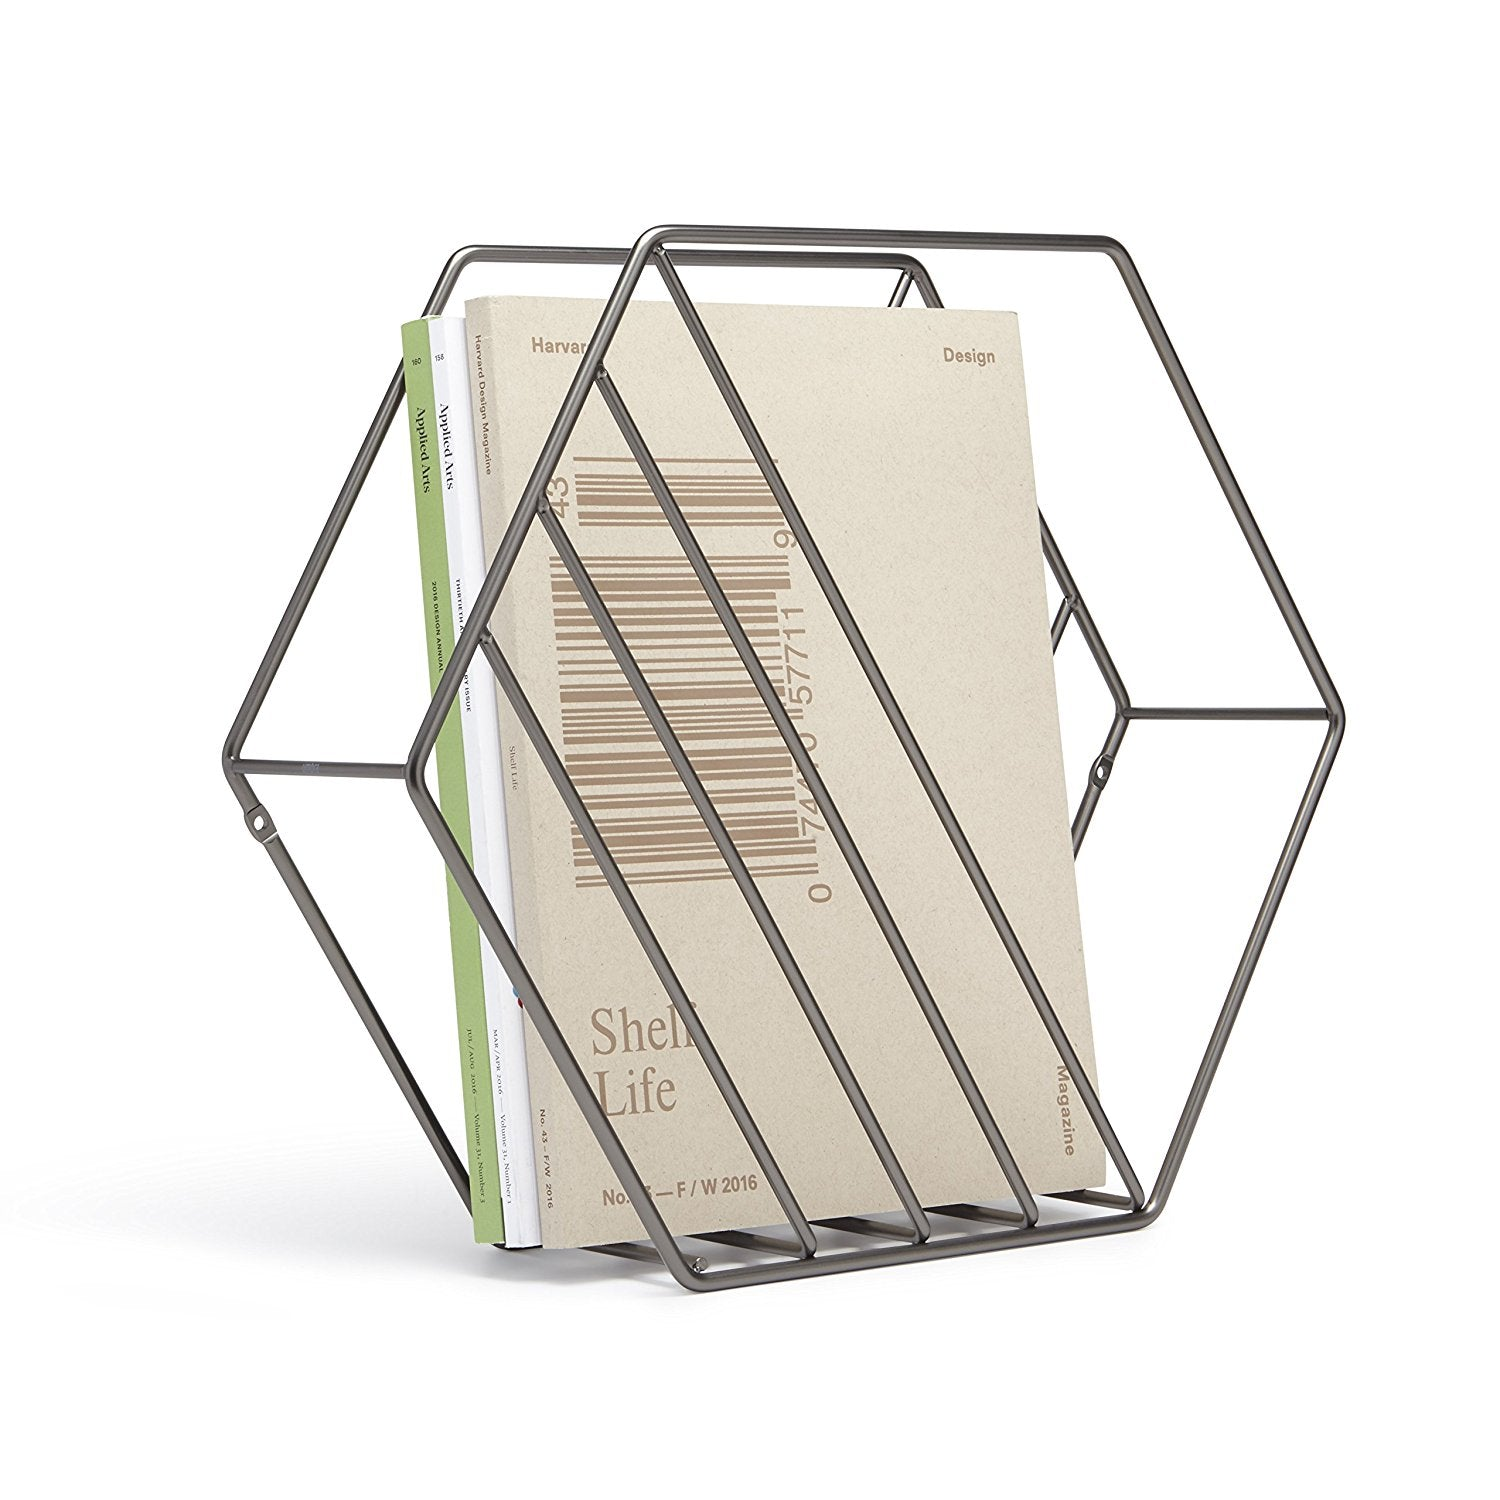 Trigon Magnetic Bulletin Board By Umbra For Modern Home Zillymonkey Wiring Diagram Zina Magazine Rack Record Holder